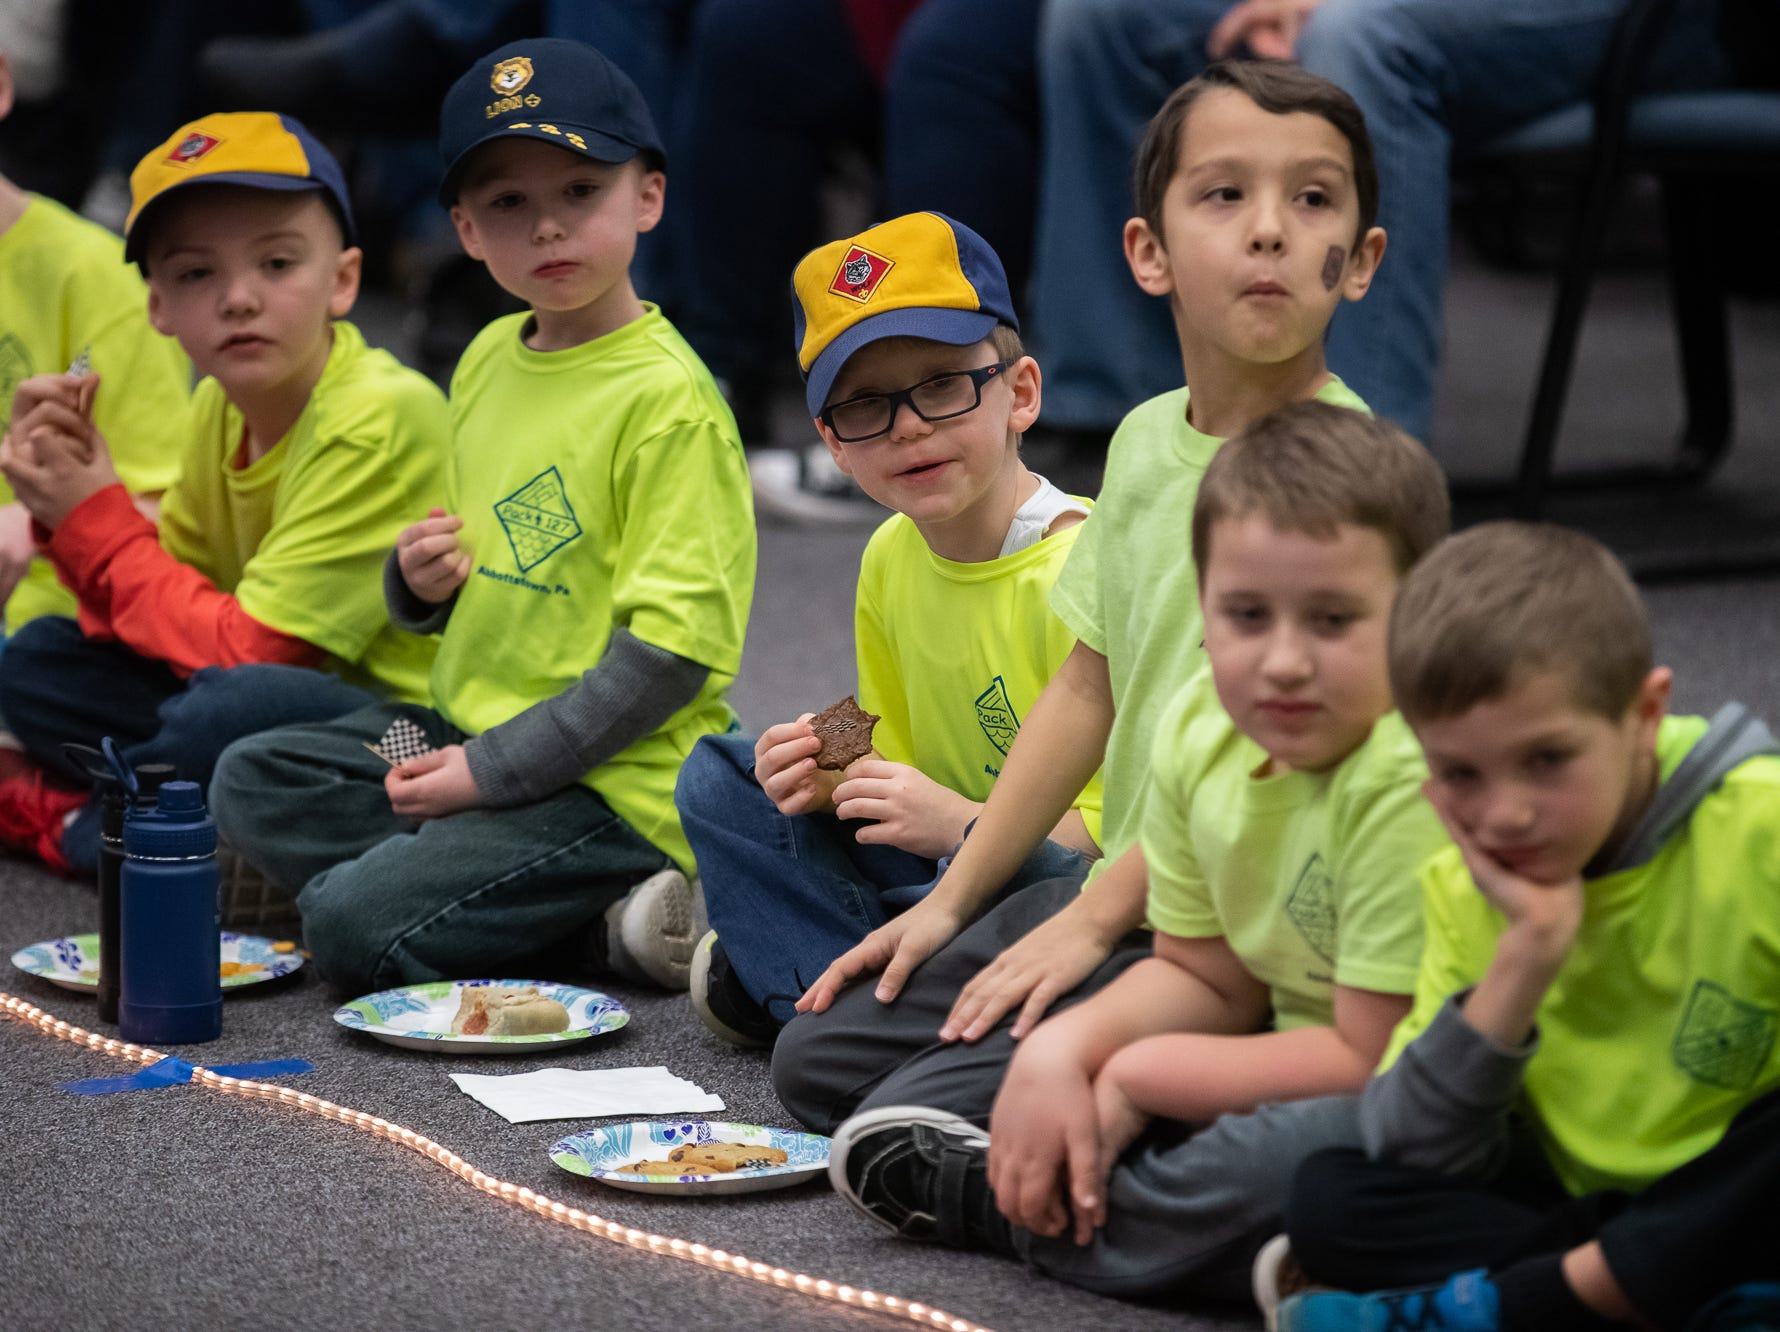 Cub scouts watch cars race during the cub scouts pack 127 Pinewood Derby event at Lincoln Intermediate Unit 12, Sunday, Feb. 10 in New Oxford. The scouts had a month to design their custom pinewood cars to race in the event.